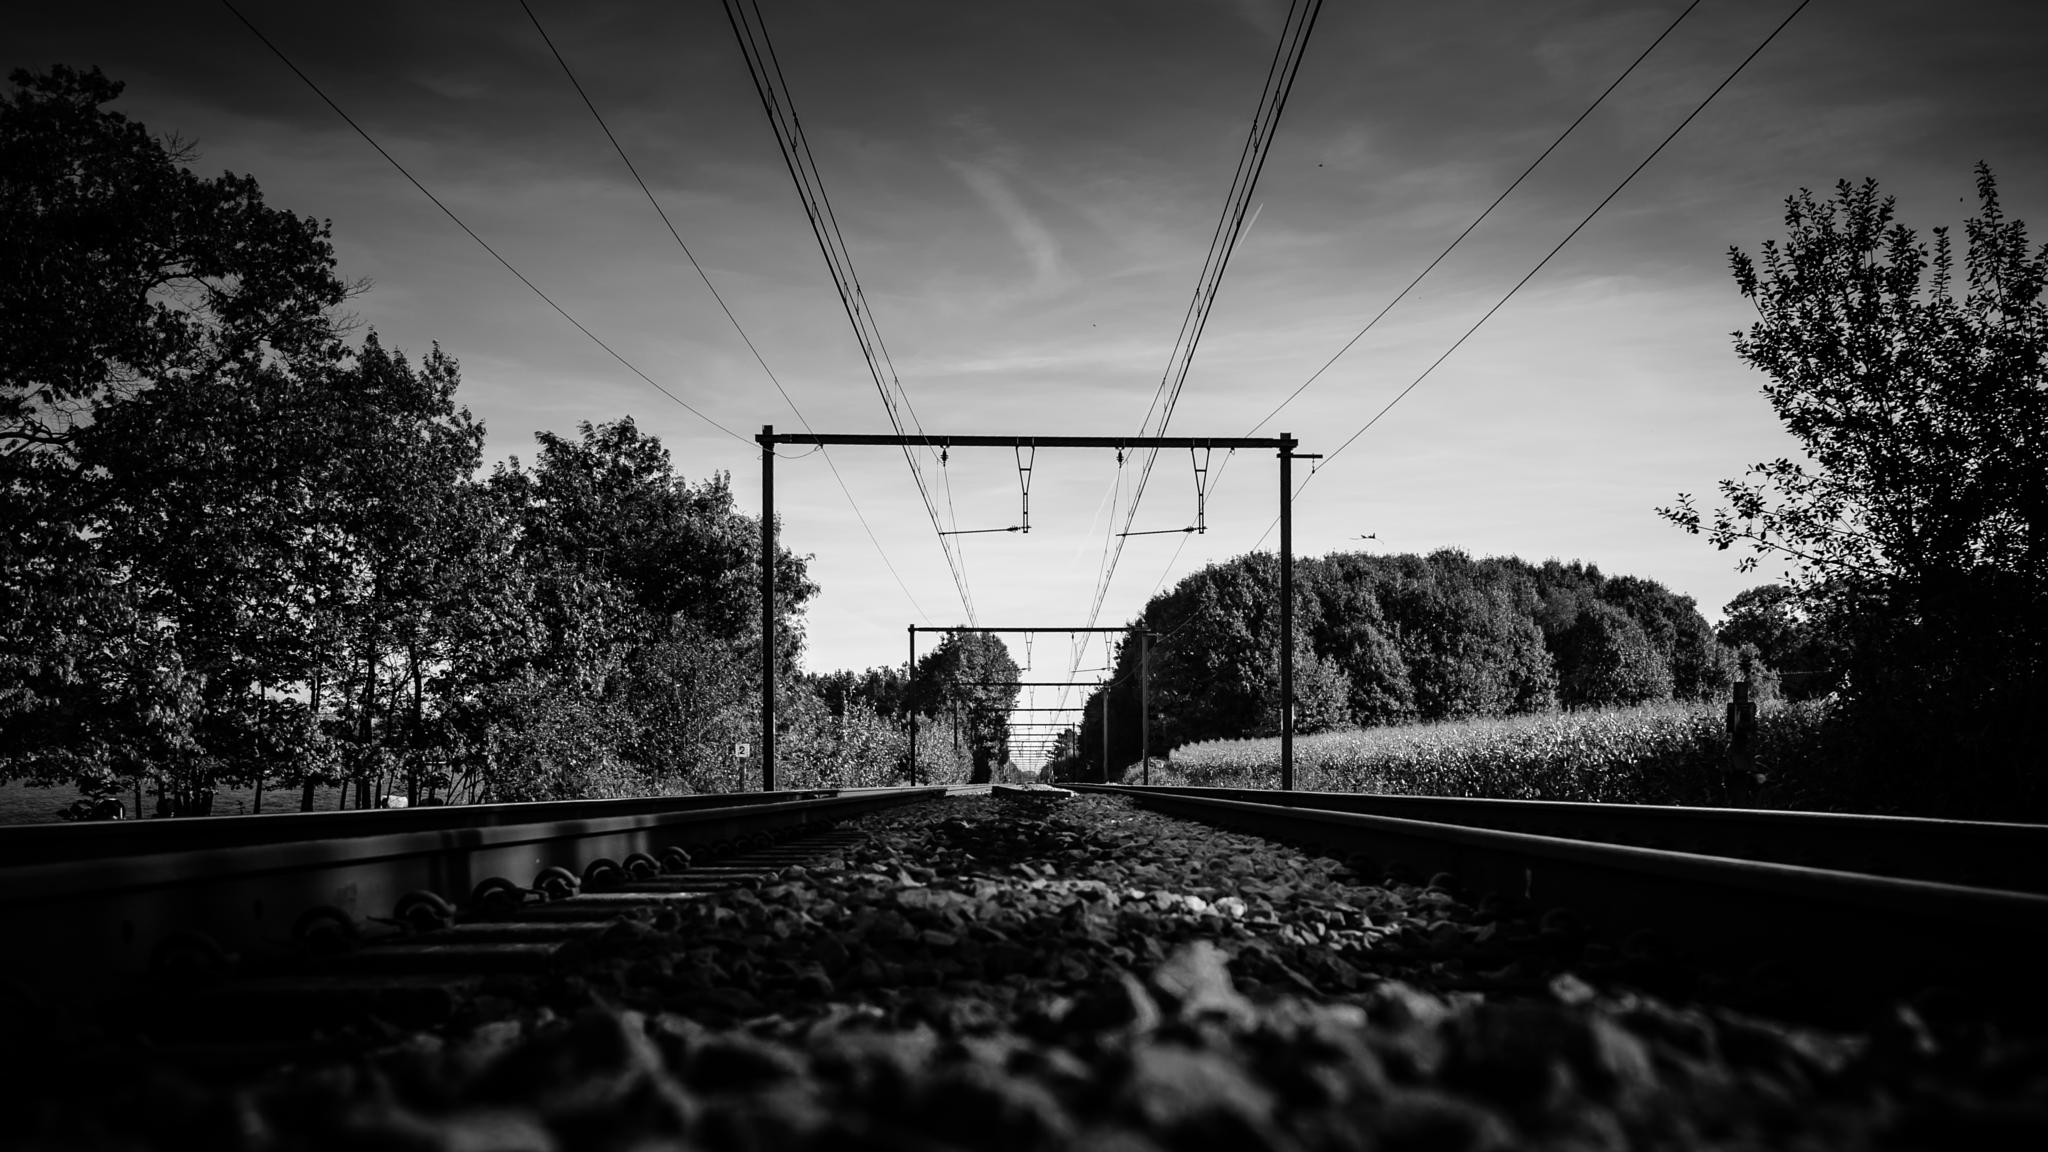 the road to somewhere by Nico Mombaerts Fotografie